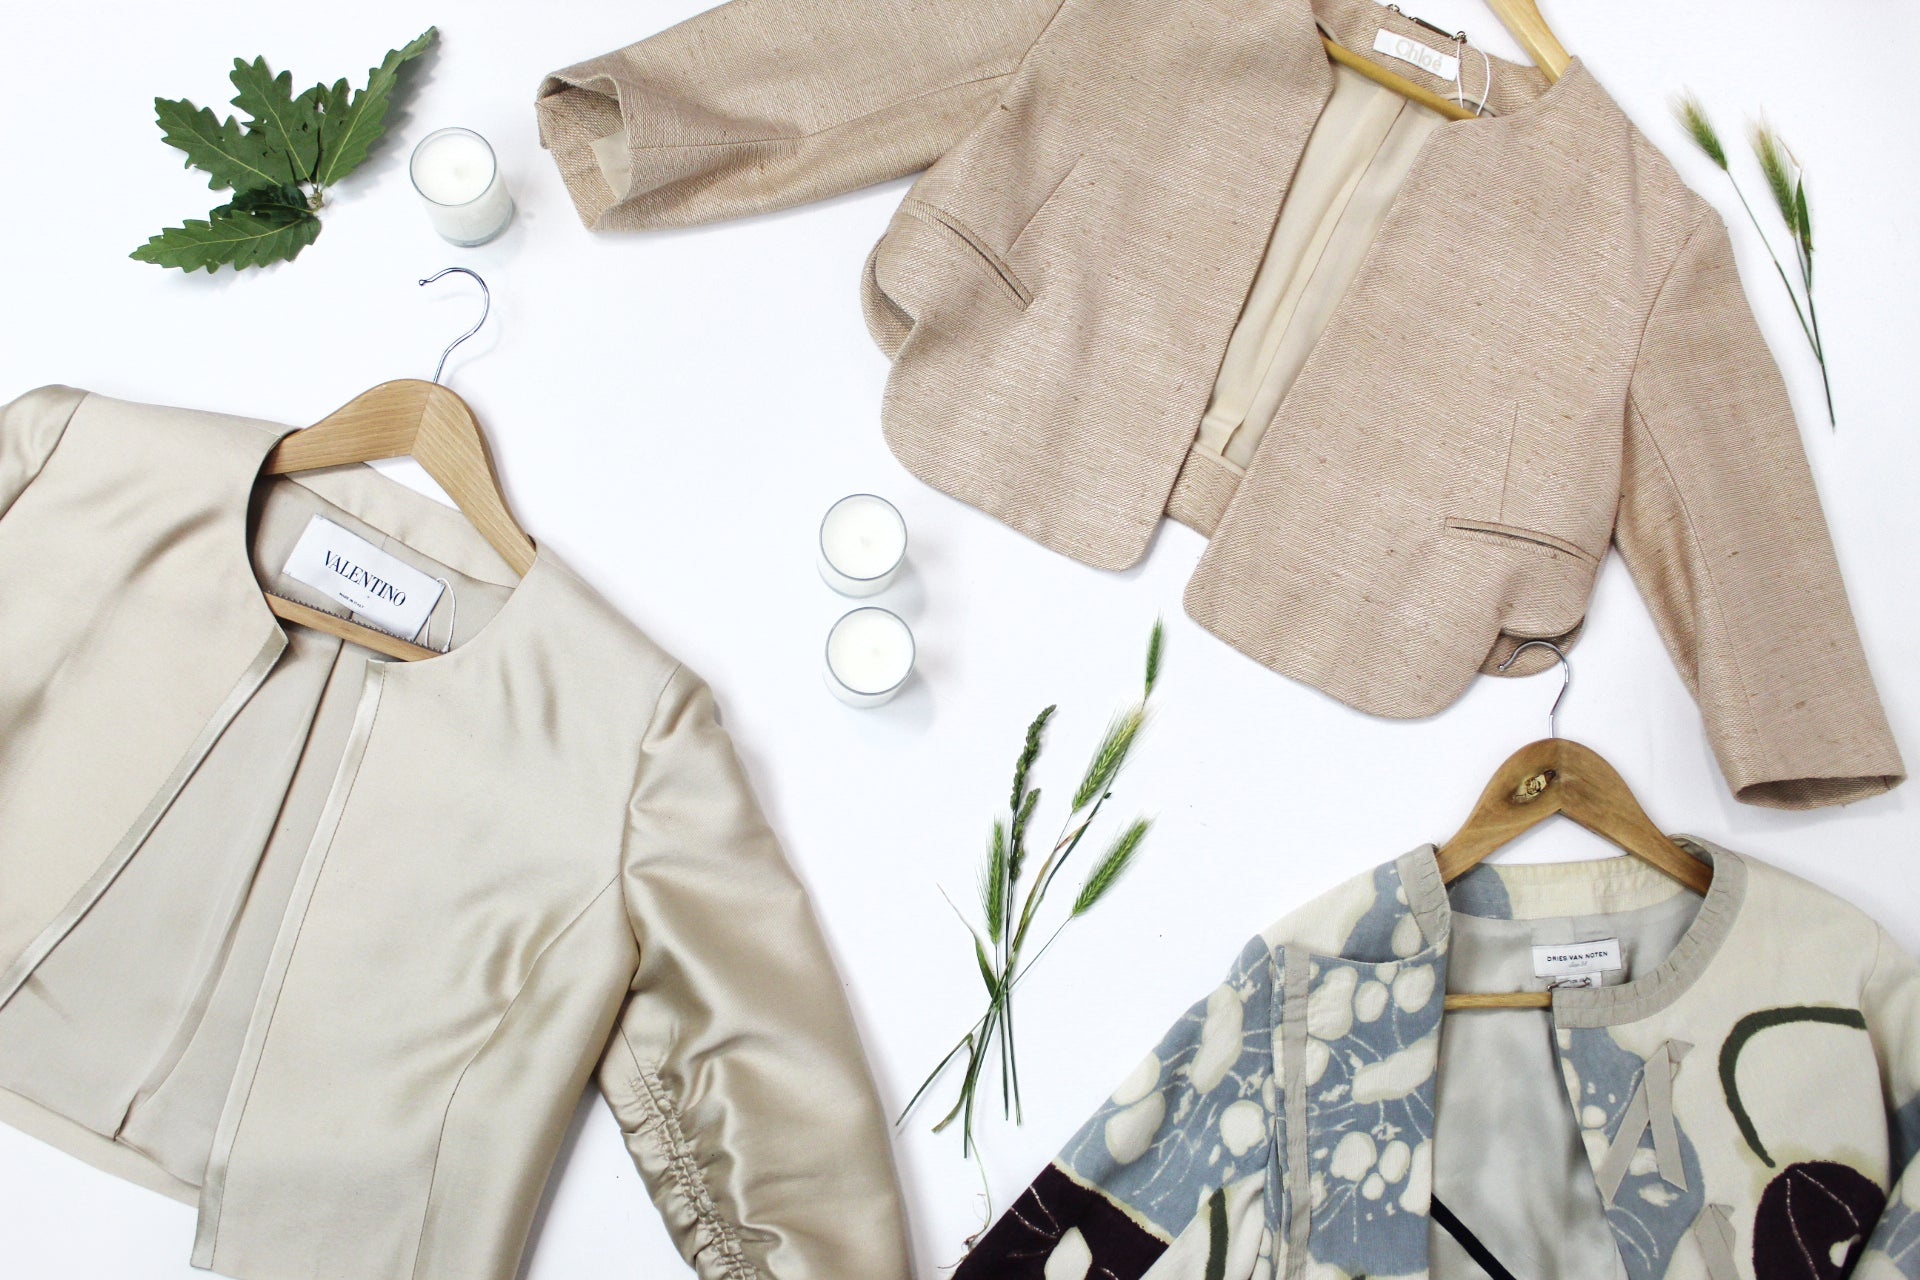 Cropped Jackets: The Luxury Item Your Wardrobe Has Been Missing